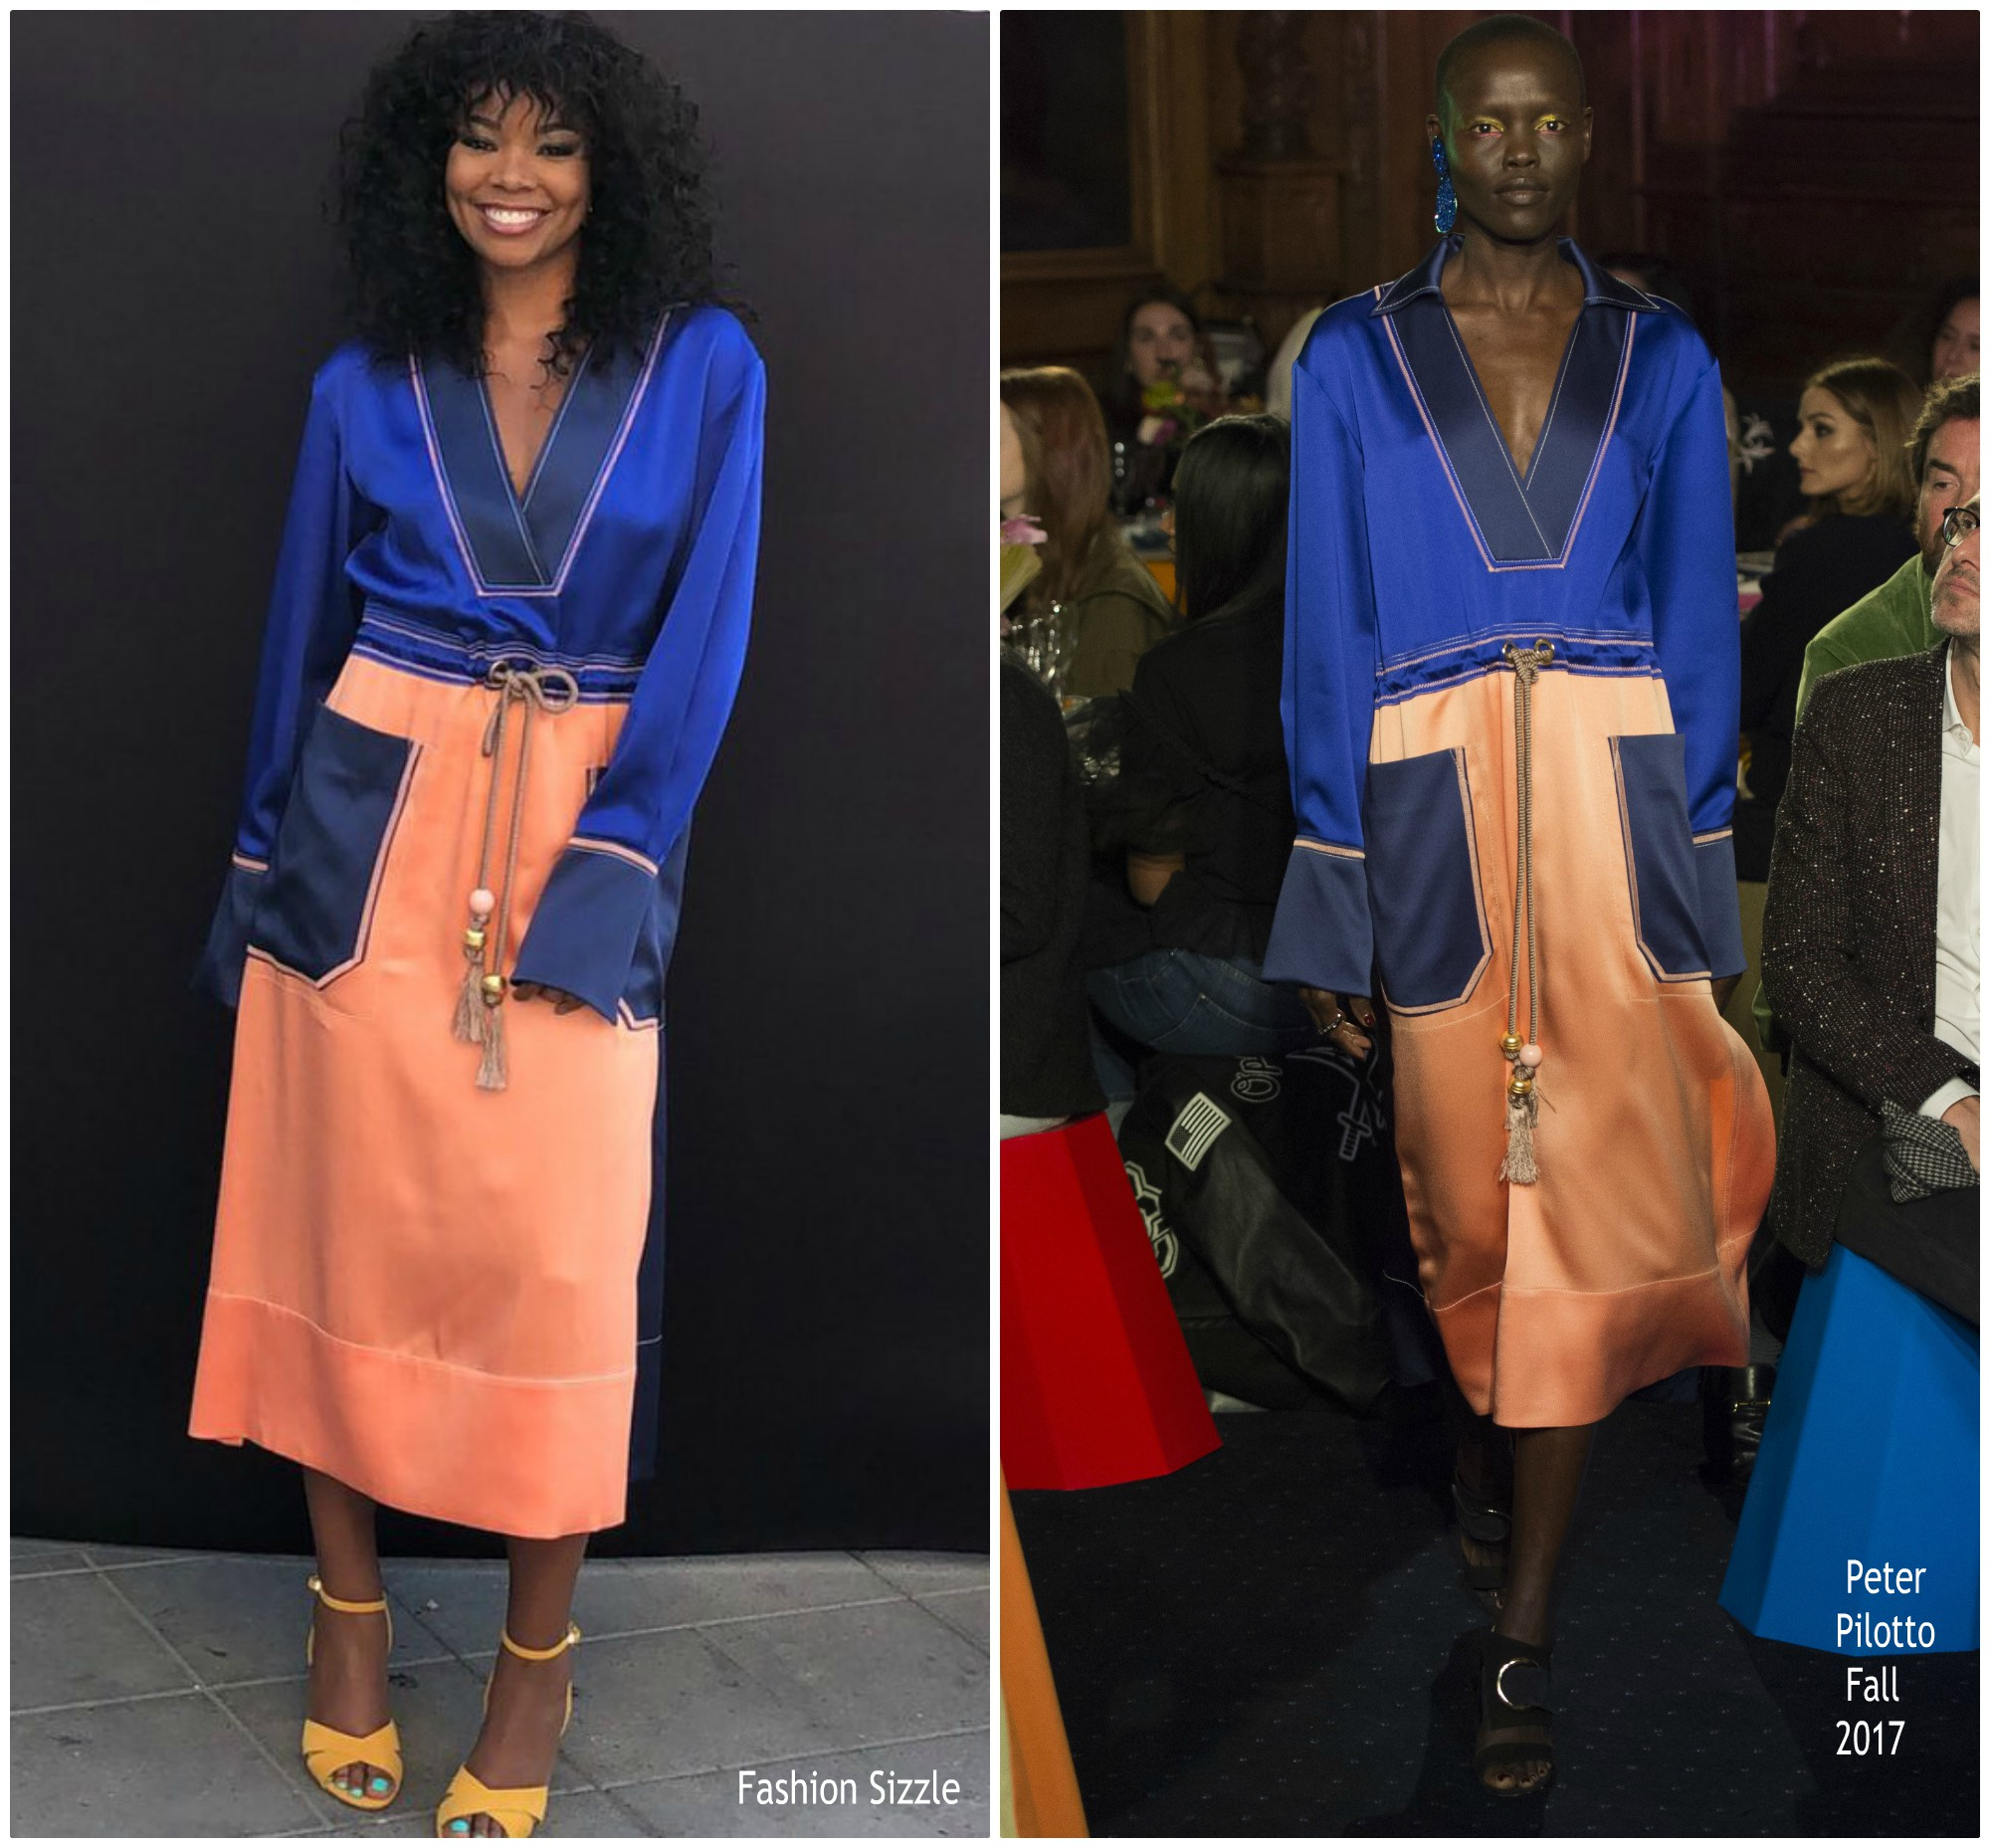 gabrielle-union-in-peter-pilotto-breaking-in-meet-and-greet